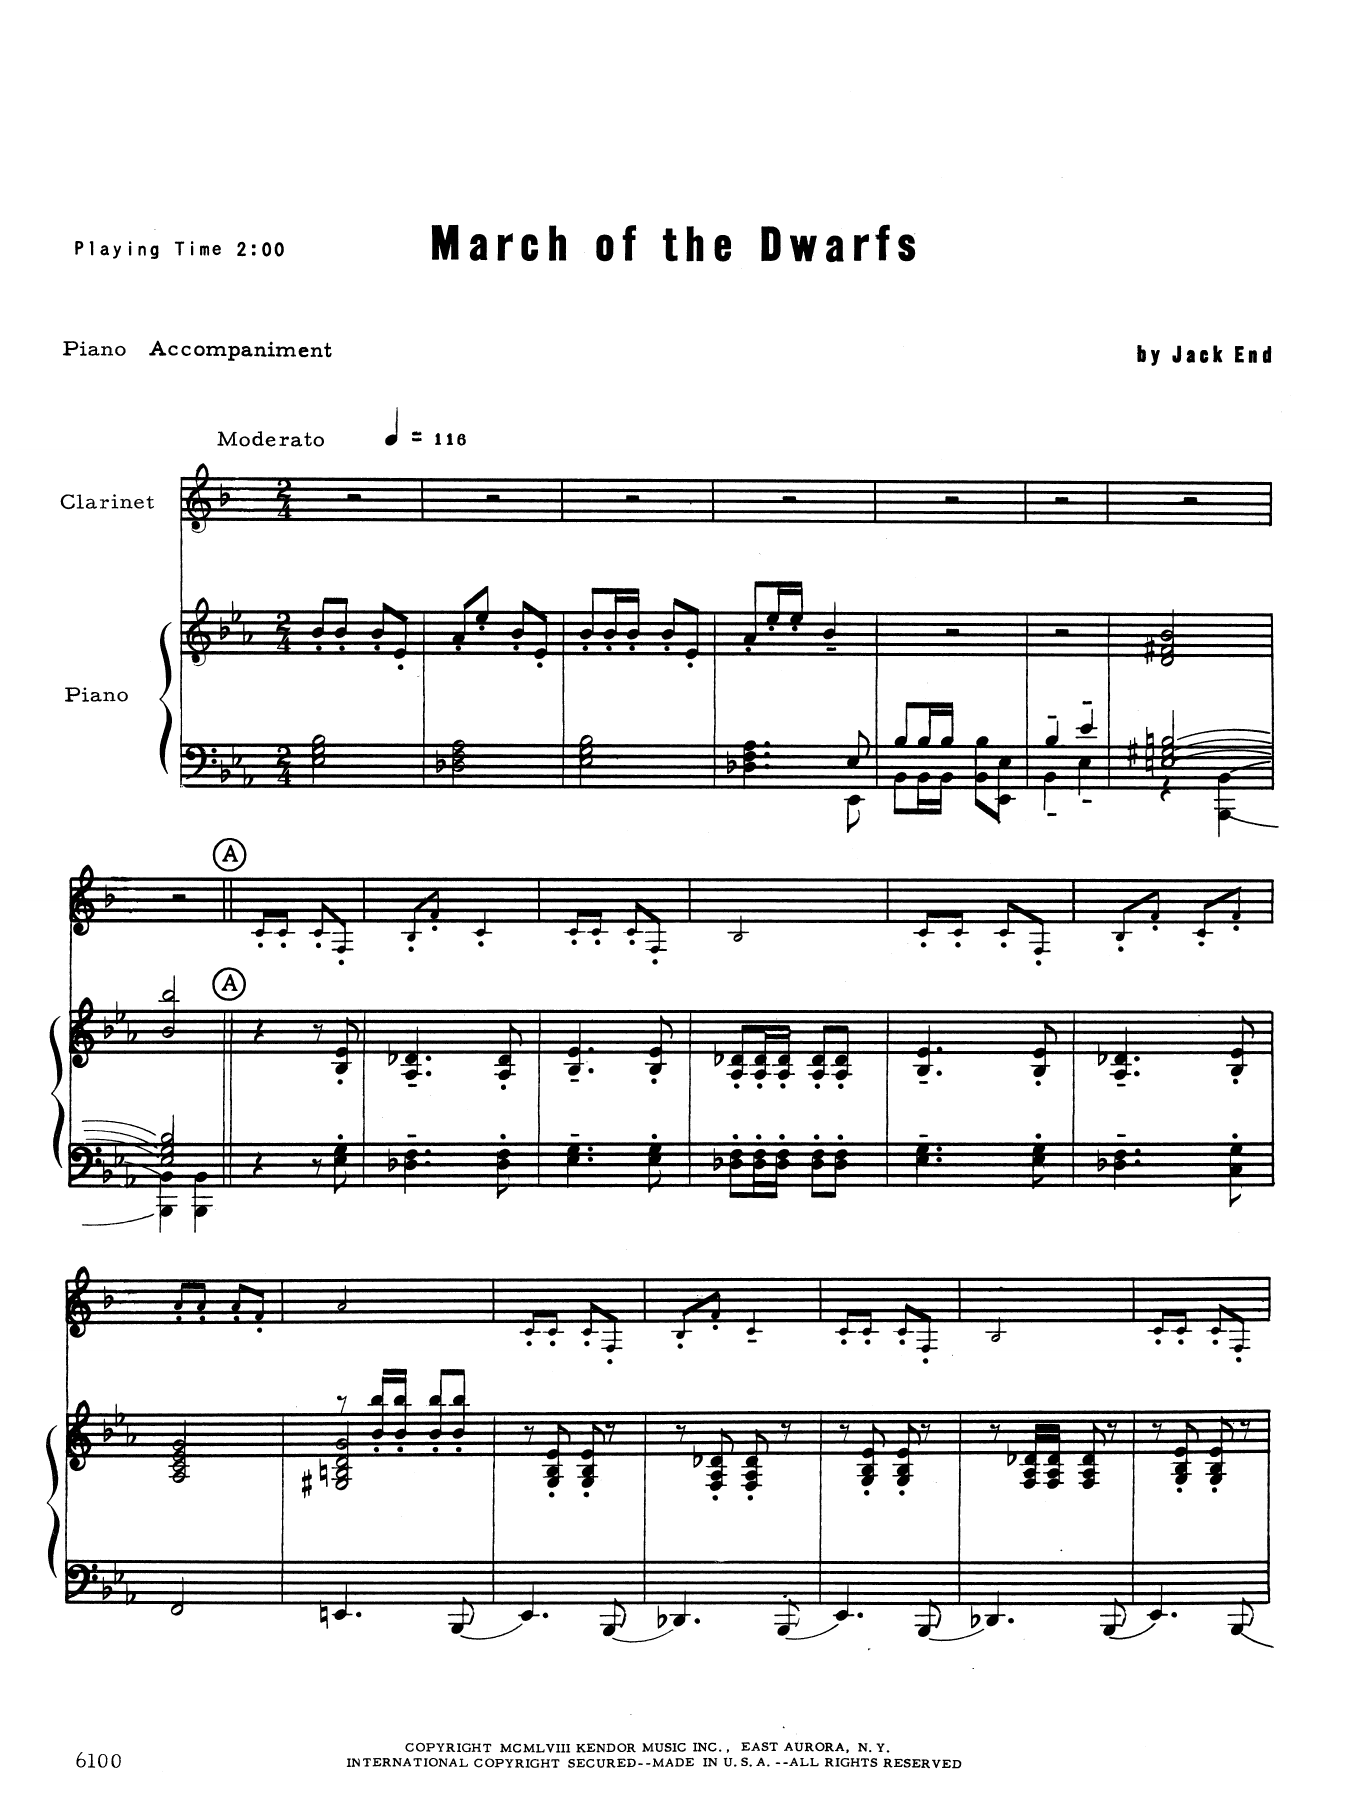 Jack End March of the Dwarfs - Piano (optional) sheet music notes and chords. Download Printable PDF.